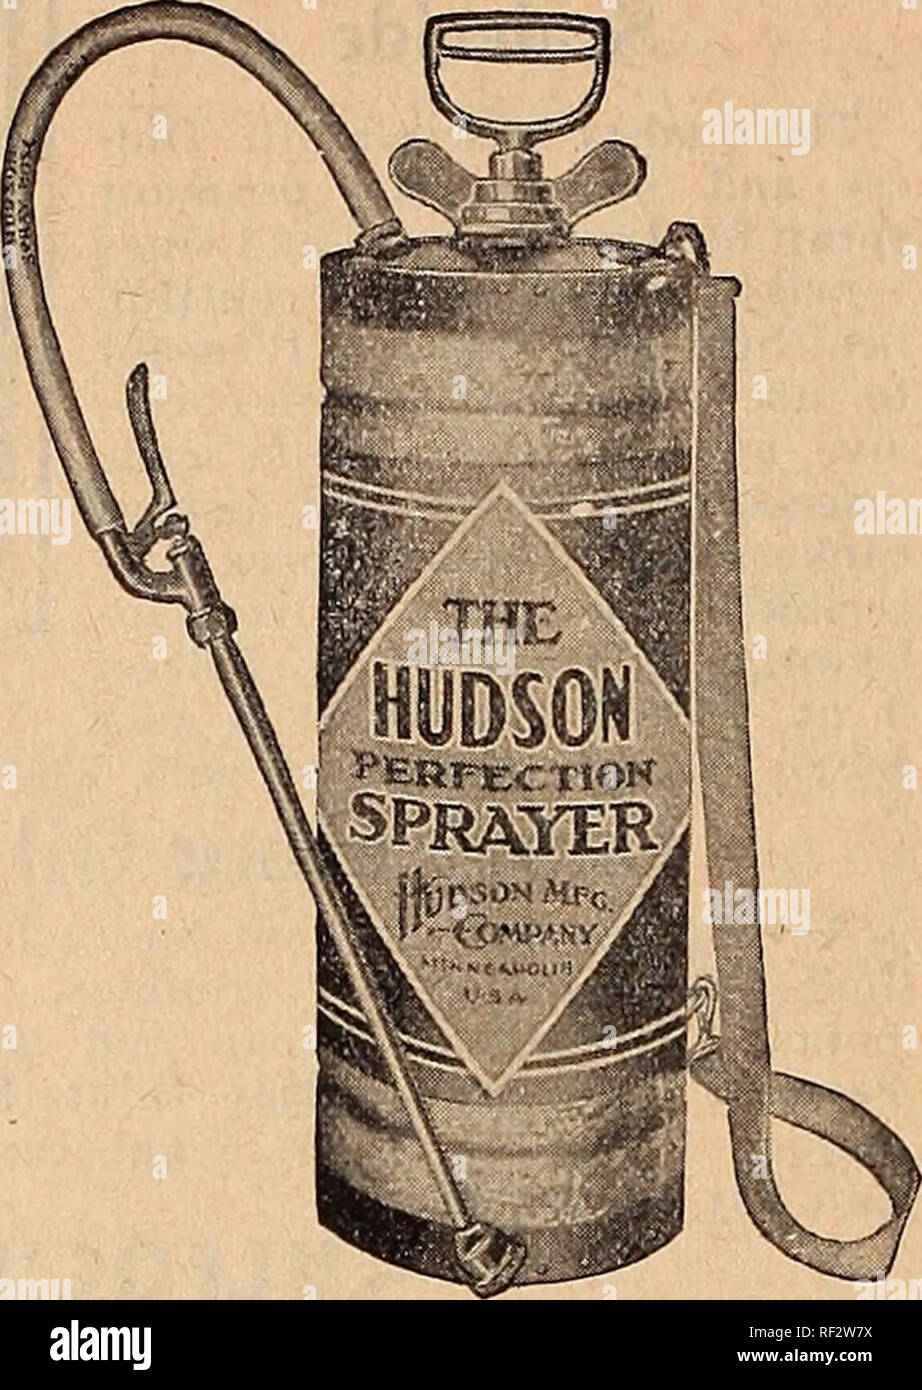 . [Catalog]. Nurseries (Horticulture) Tennessee Memphis Catalogs; Nursery stock Tennessee Memphis Catalogs; Flowers Tennessee Memphis Catalogs; Vegetables Tennessee Memphis Catalogs; Fruit Tennessee Memphis Catalogs; Gardening Tennessee Memphis Equipment and supp. HUDSON SPRAY PUMPS Hudson Perfection Sprayer For work of any kind re- quiring a high pressure com- pressed air sprayer, the Per- fection is supreme. It pro- vides an easy and economi- cal means of whitewashing, cold water painting, disin- fecting, etc. It is very prac- tical for use around the orchard, barn, or outhouse; on truck far - Stock Image